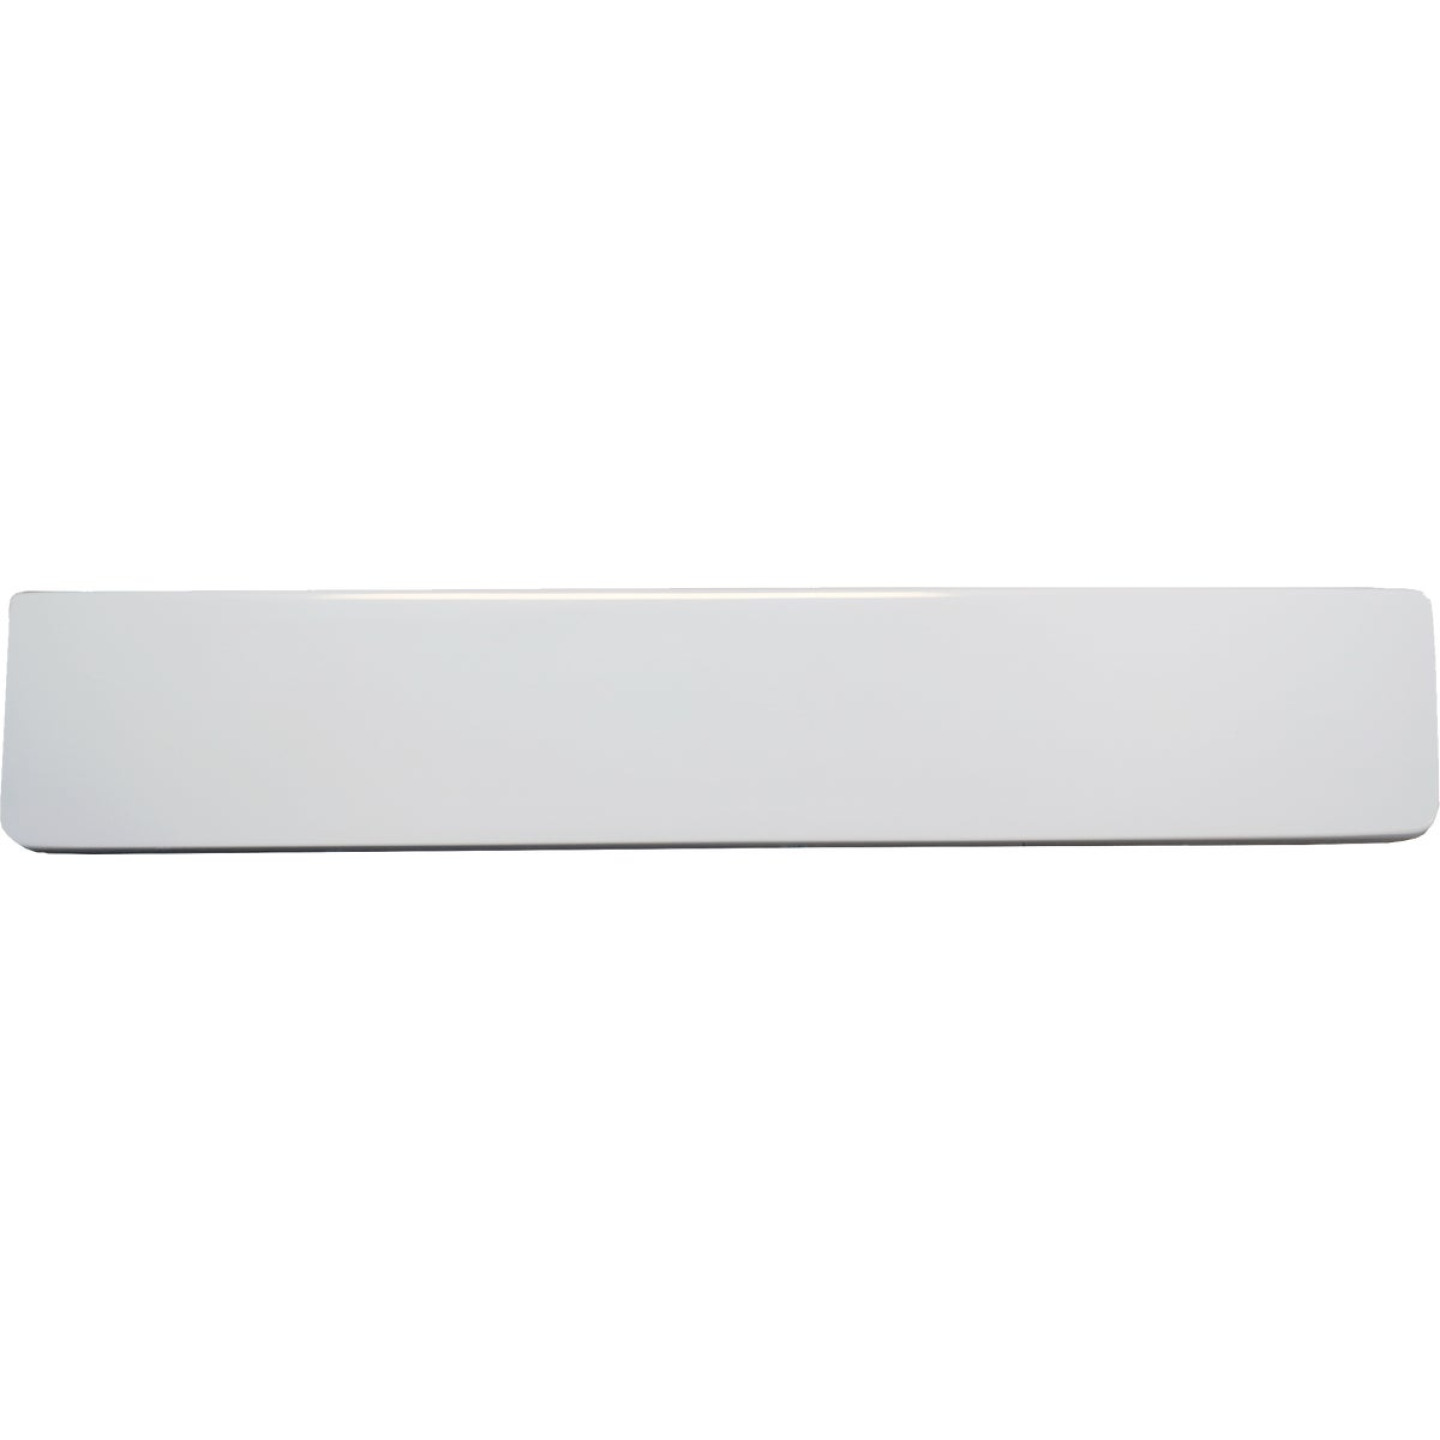 Modular Vanity Tops 4 In. H x 22 In. L Solid White Cultured Marble Side Splash, Universal Image 2